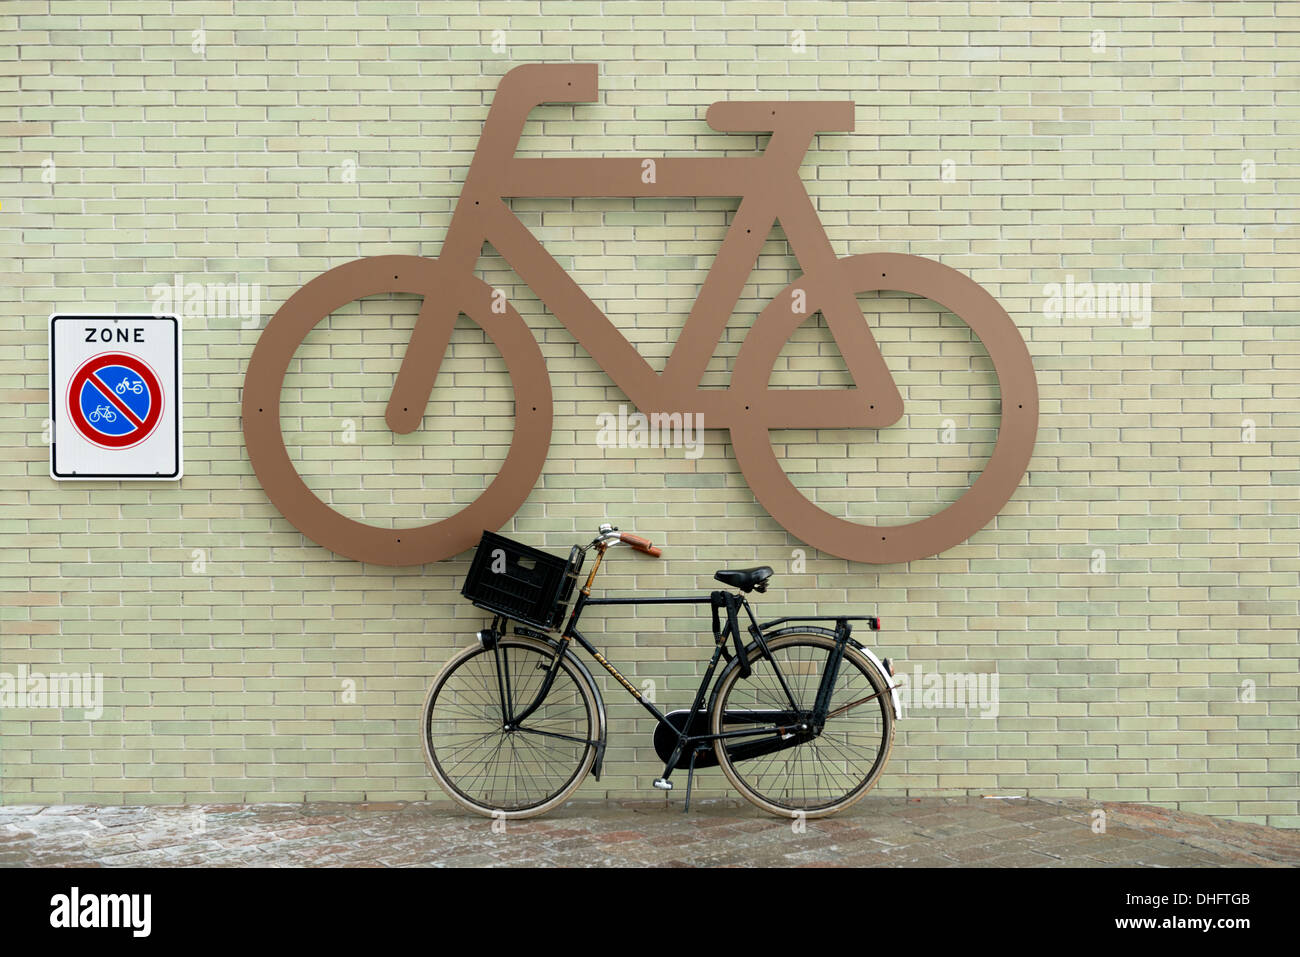 A typical dutch bicycle leant underneath a large bike symbol in Amsterdam, The Netherlands. - Stock Image